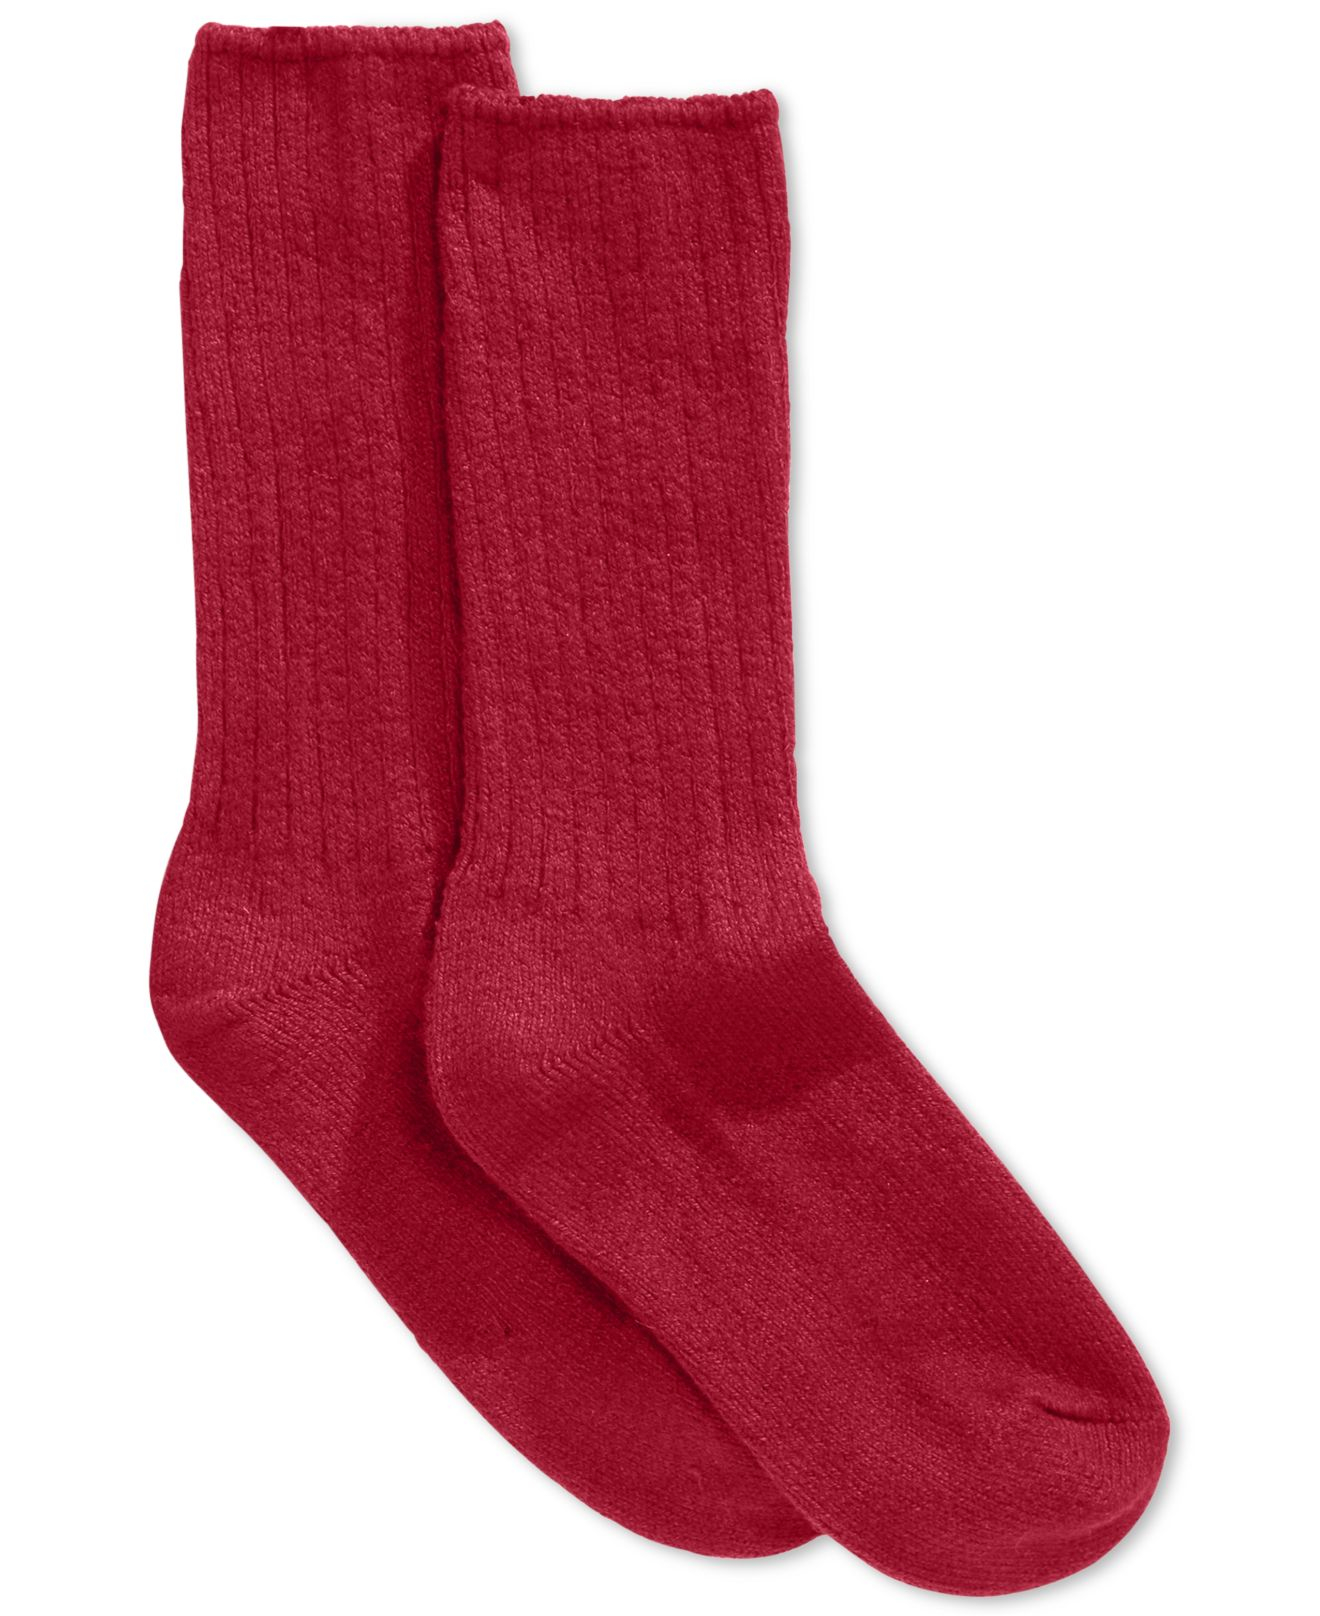 Hue Women S Ribbed Boot Socks In Red Lyst